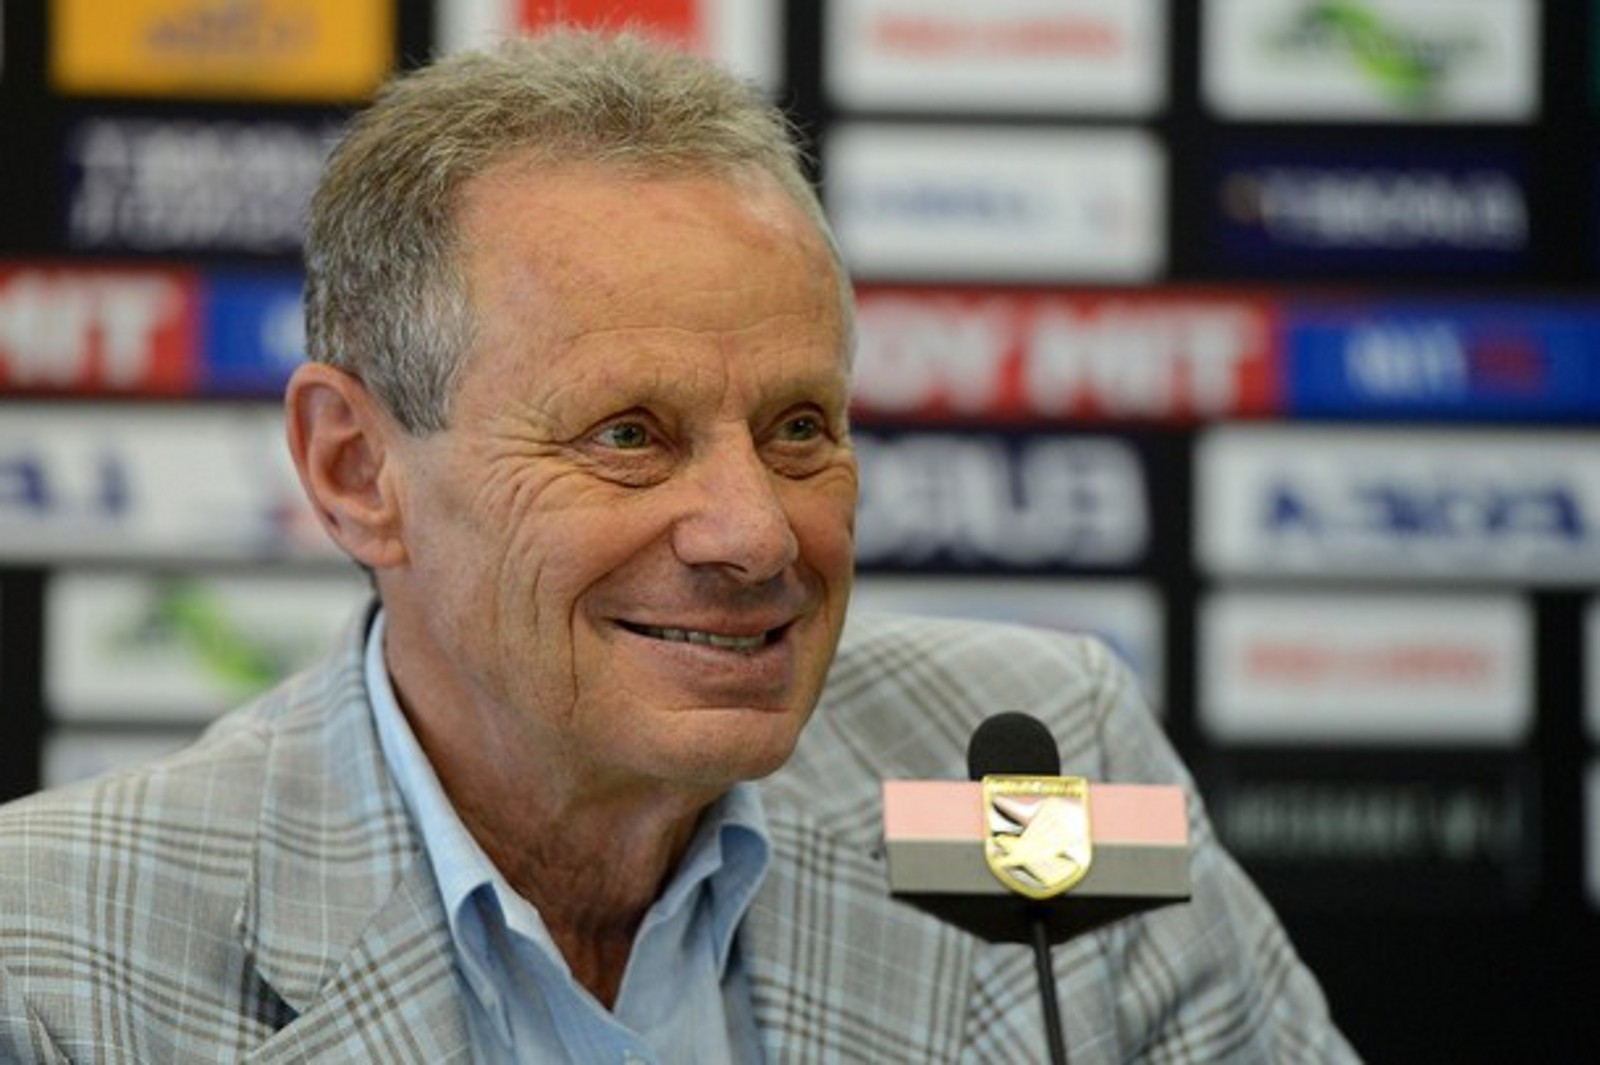 Zamparini rivela: